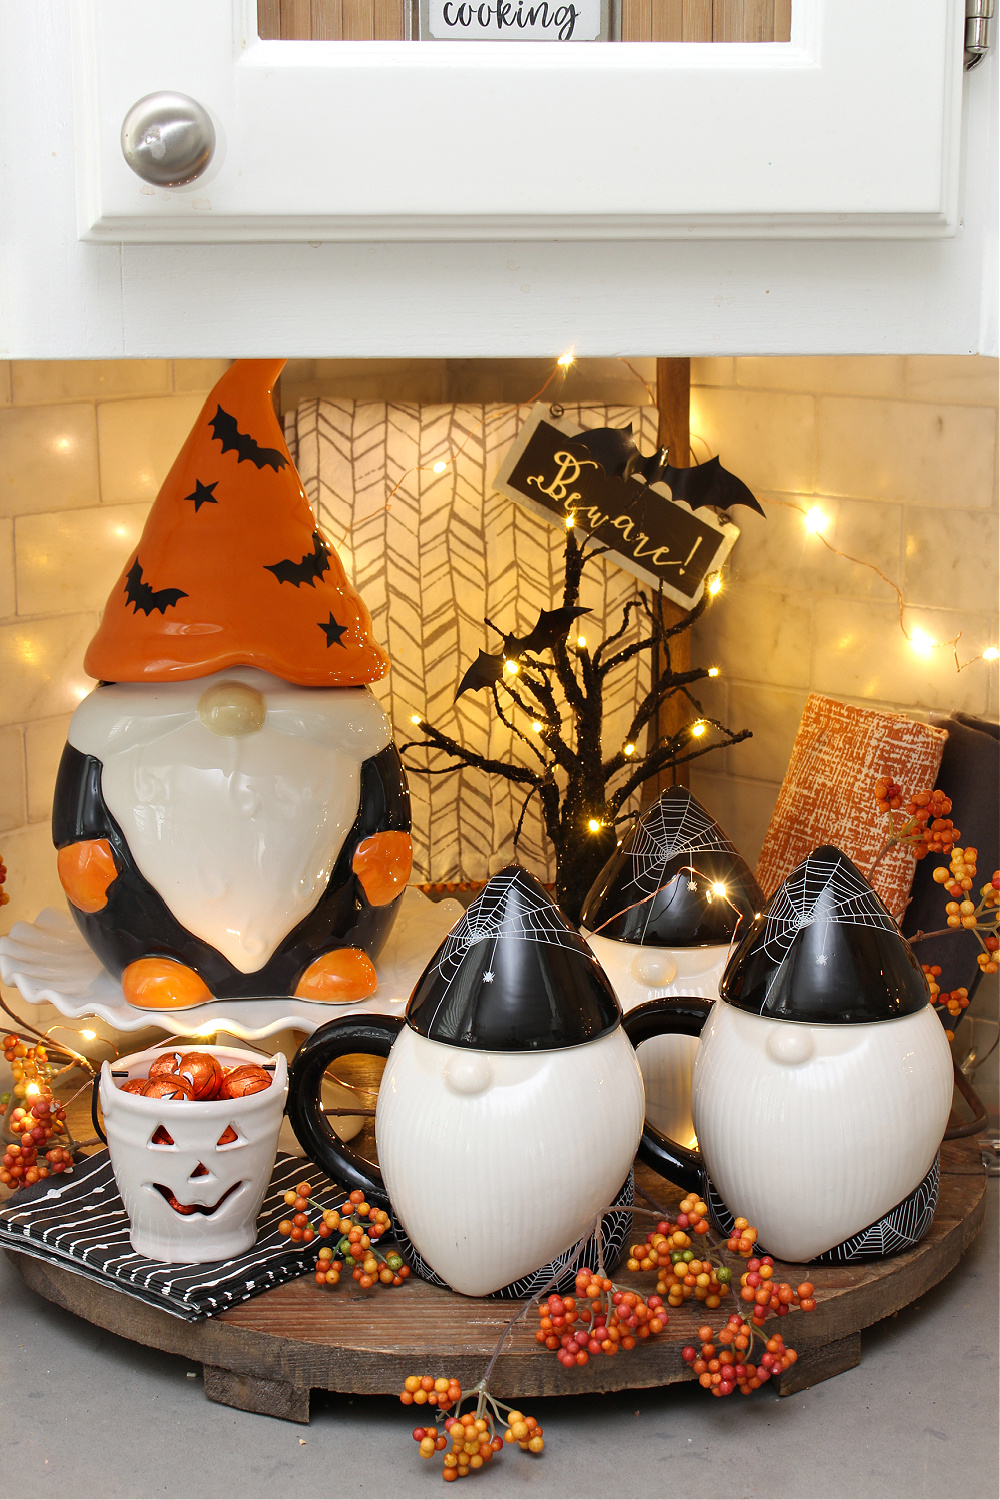 Cute Halloween vignette with Halloween gnome mugs and cookie jar.